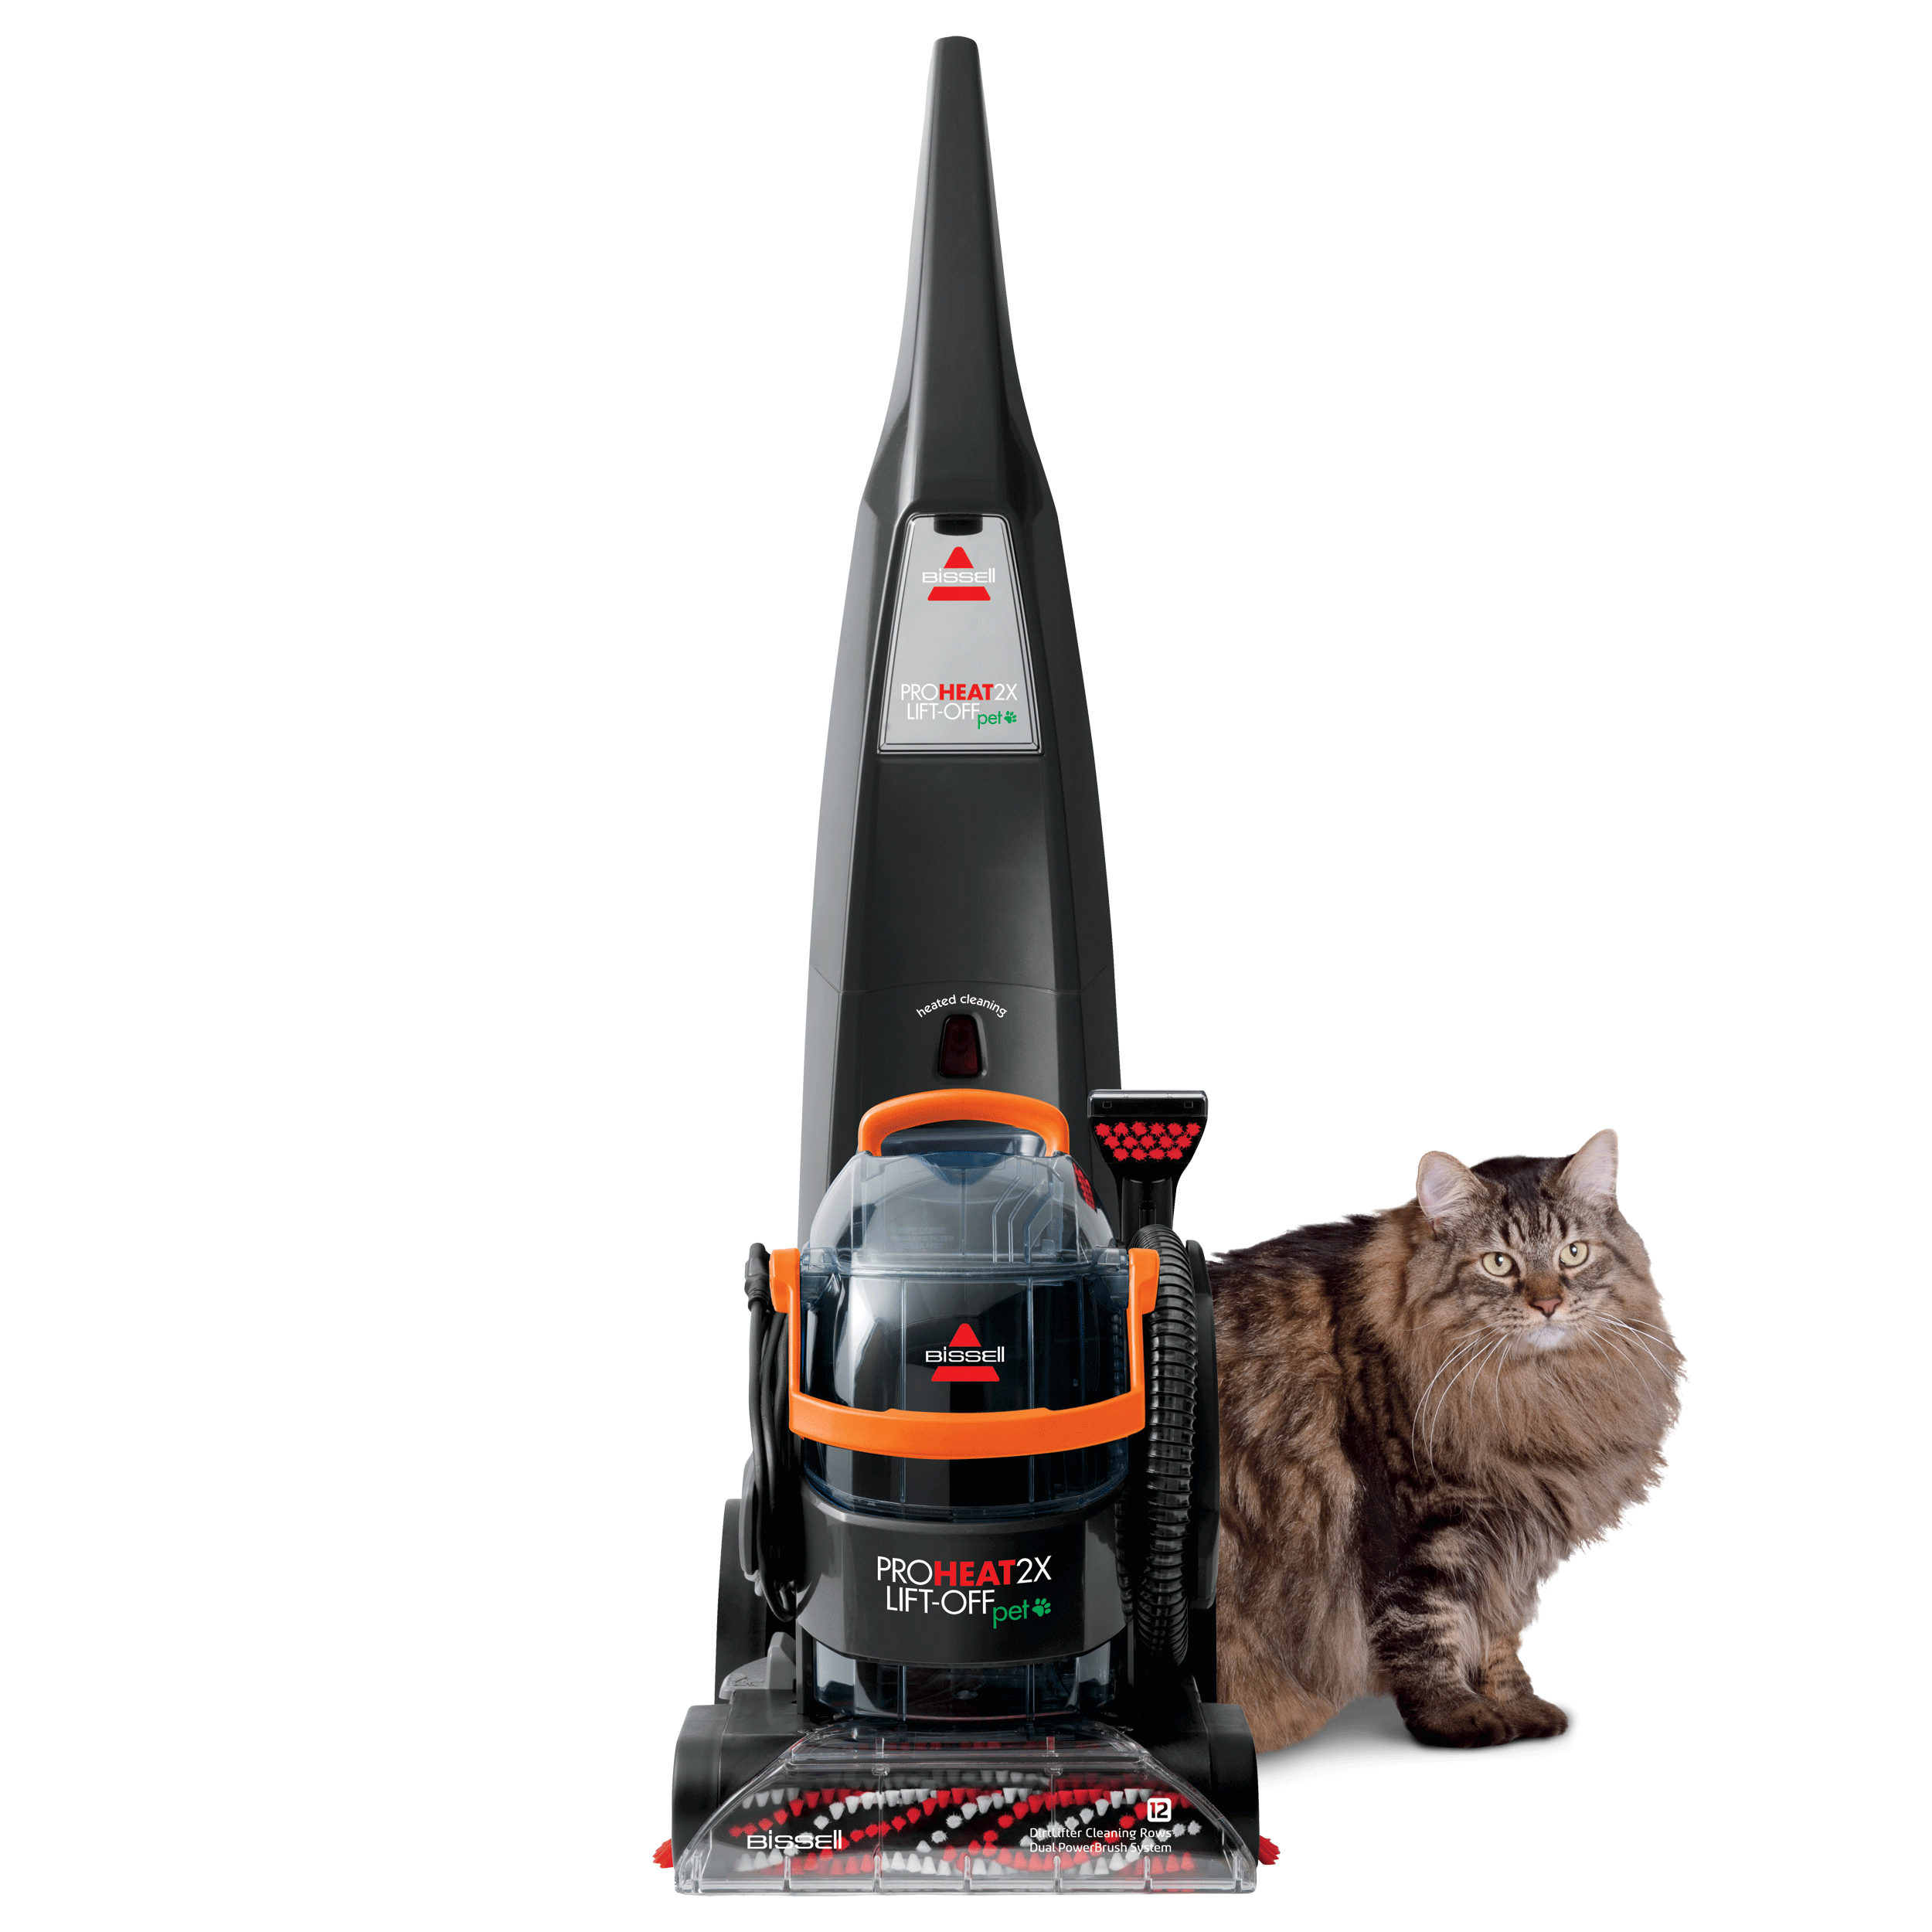 Proheat 2x Lift Off Pet 15651 In 2020 Carpet Cleaners Portable Carpet Cleaner Cleaners